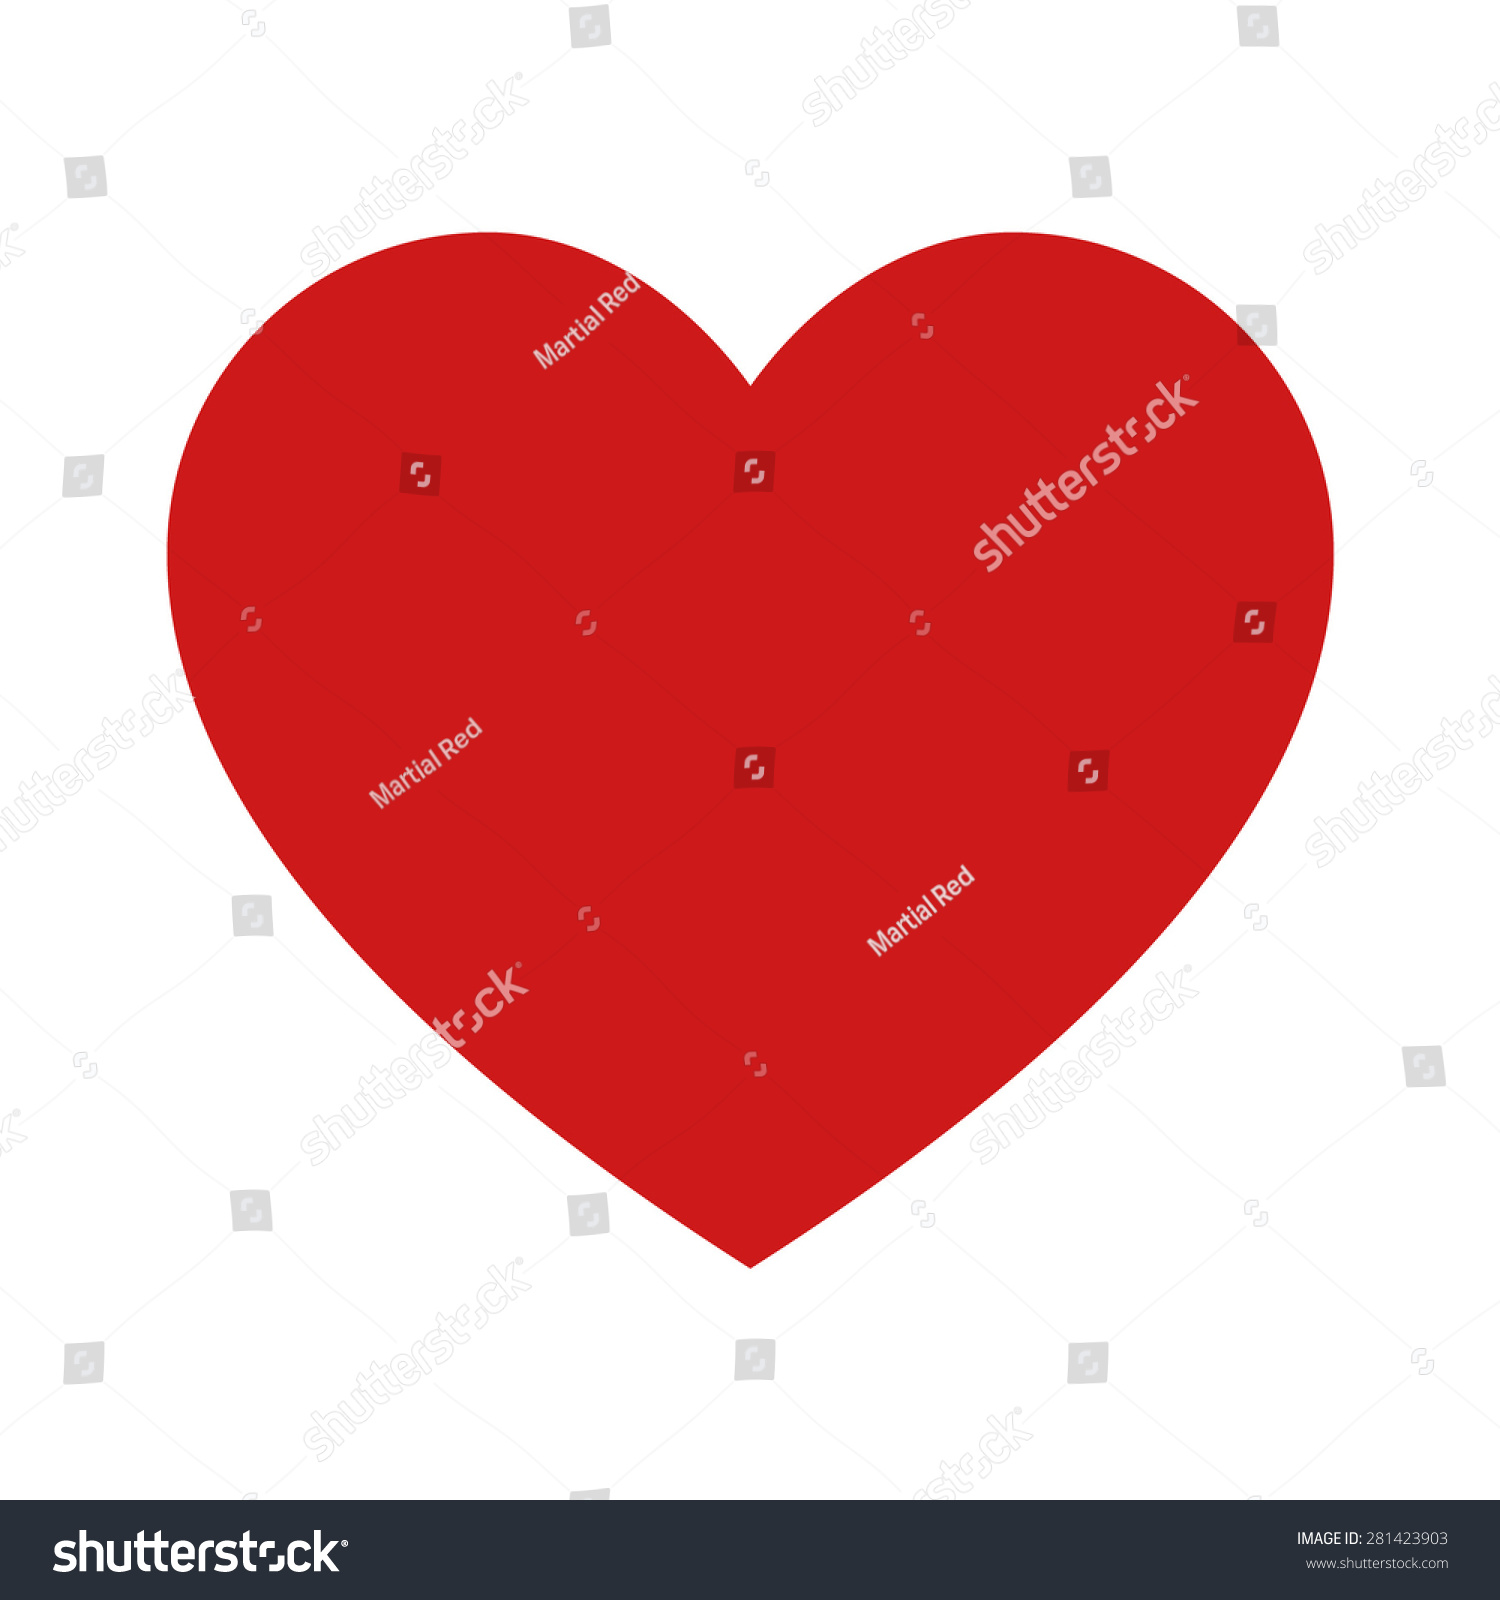 Dating sites heart